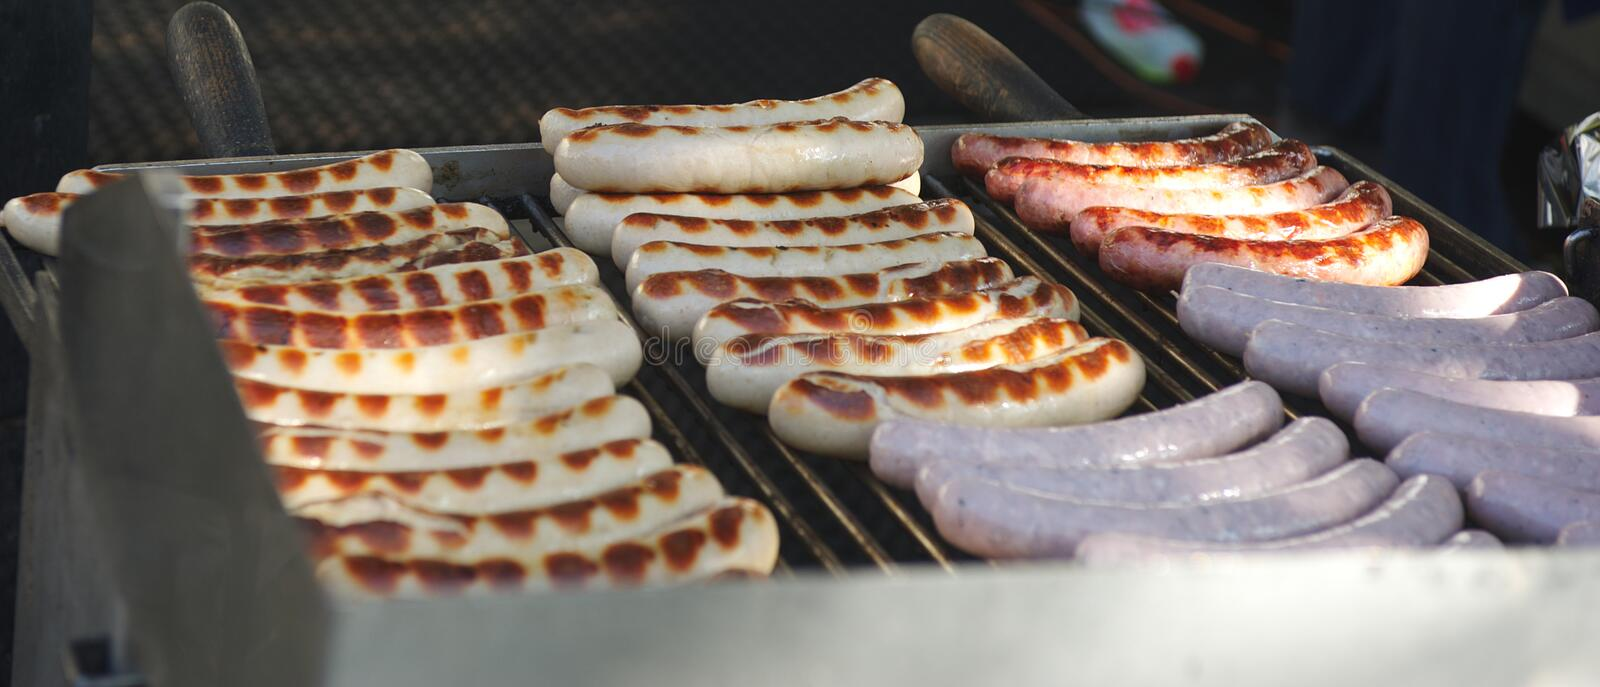 Download Cooking sausages stock image. Image of gridiron, frying - 21886407